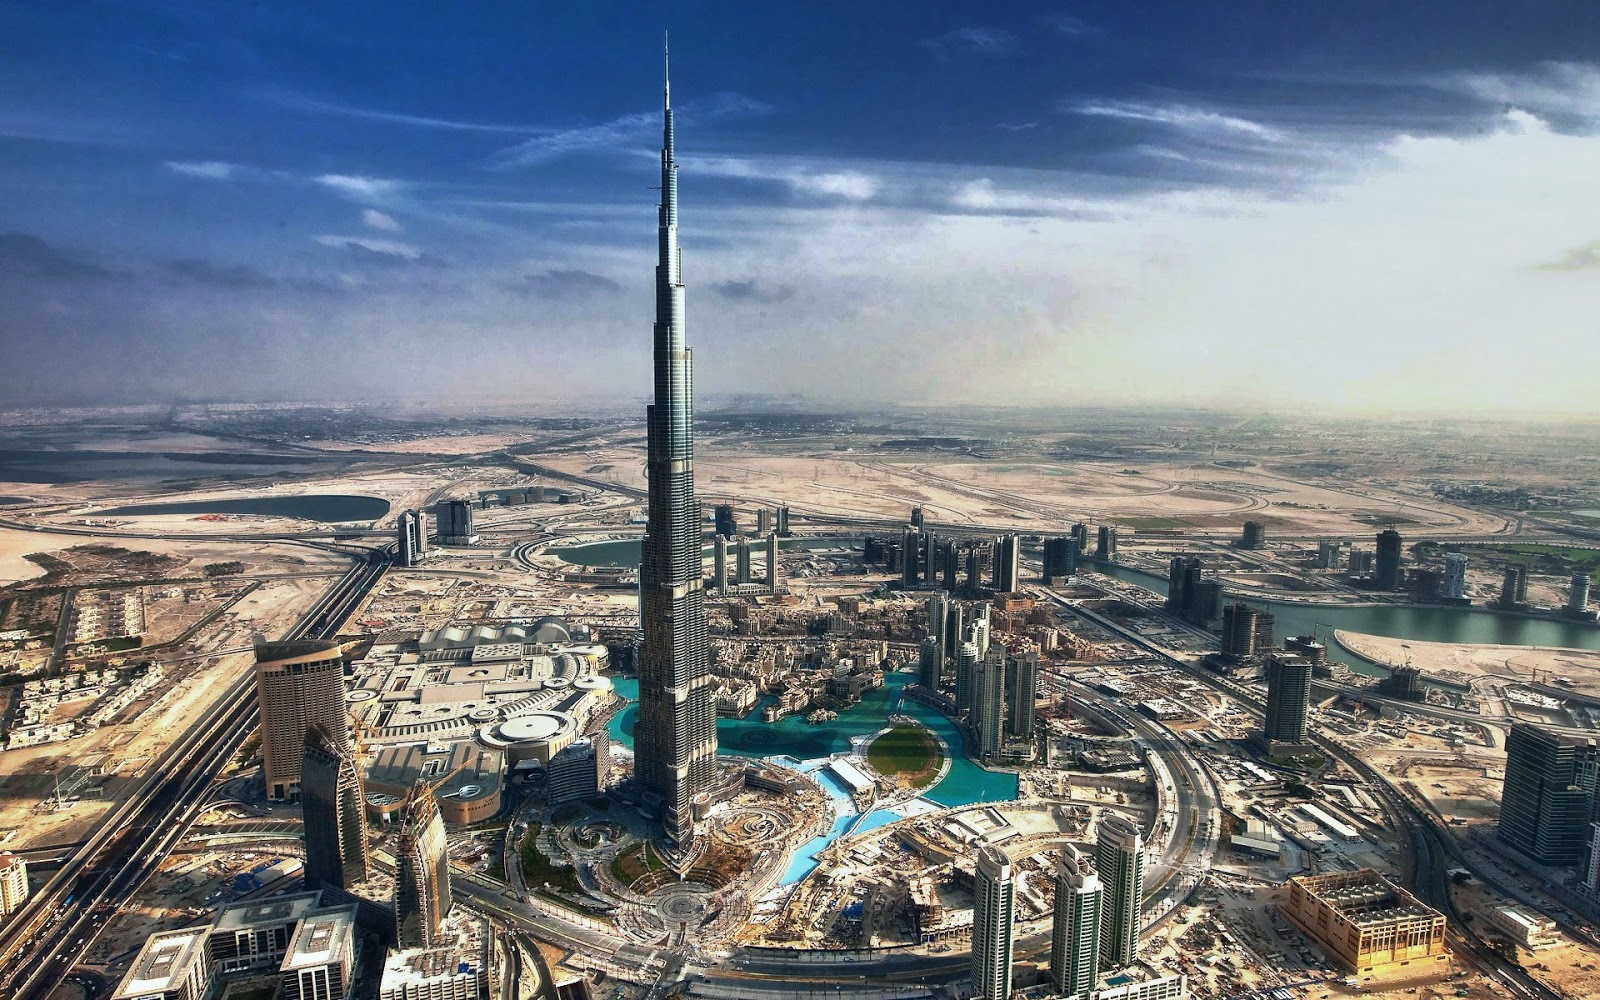 Care we hotel dubai burj khalifa for Dubai hotels near burj khalifa